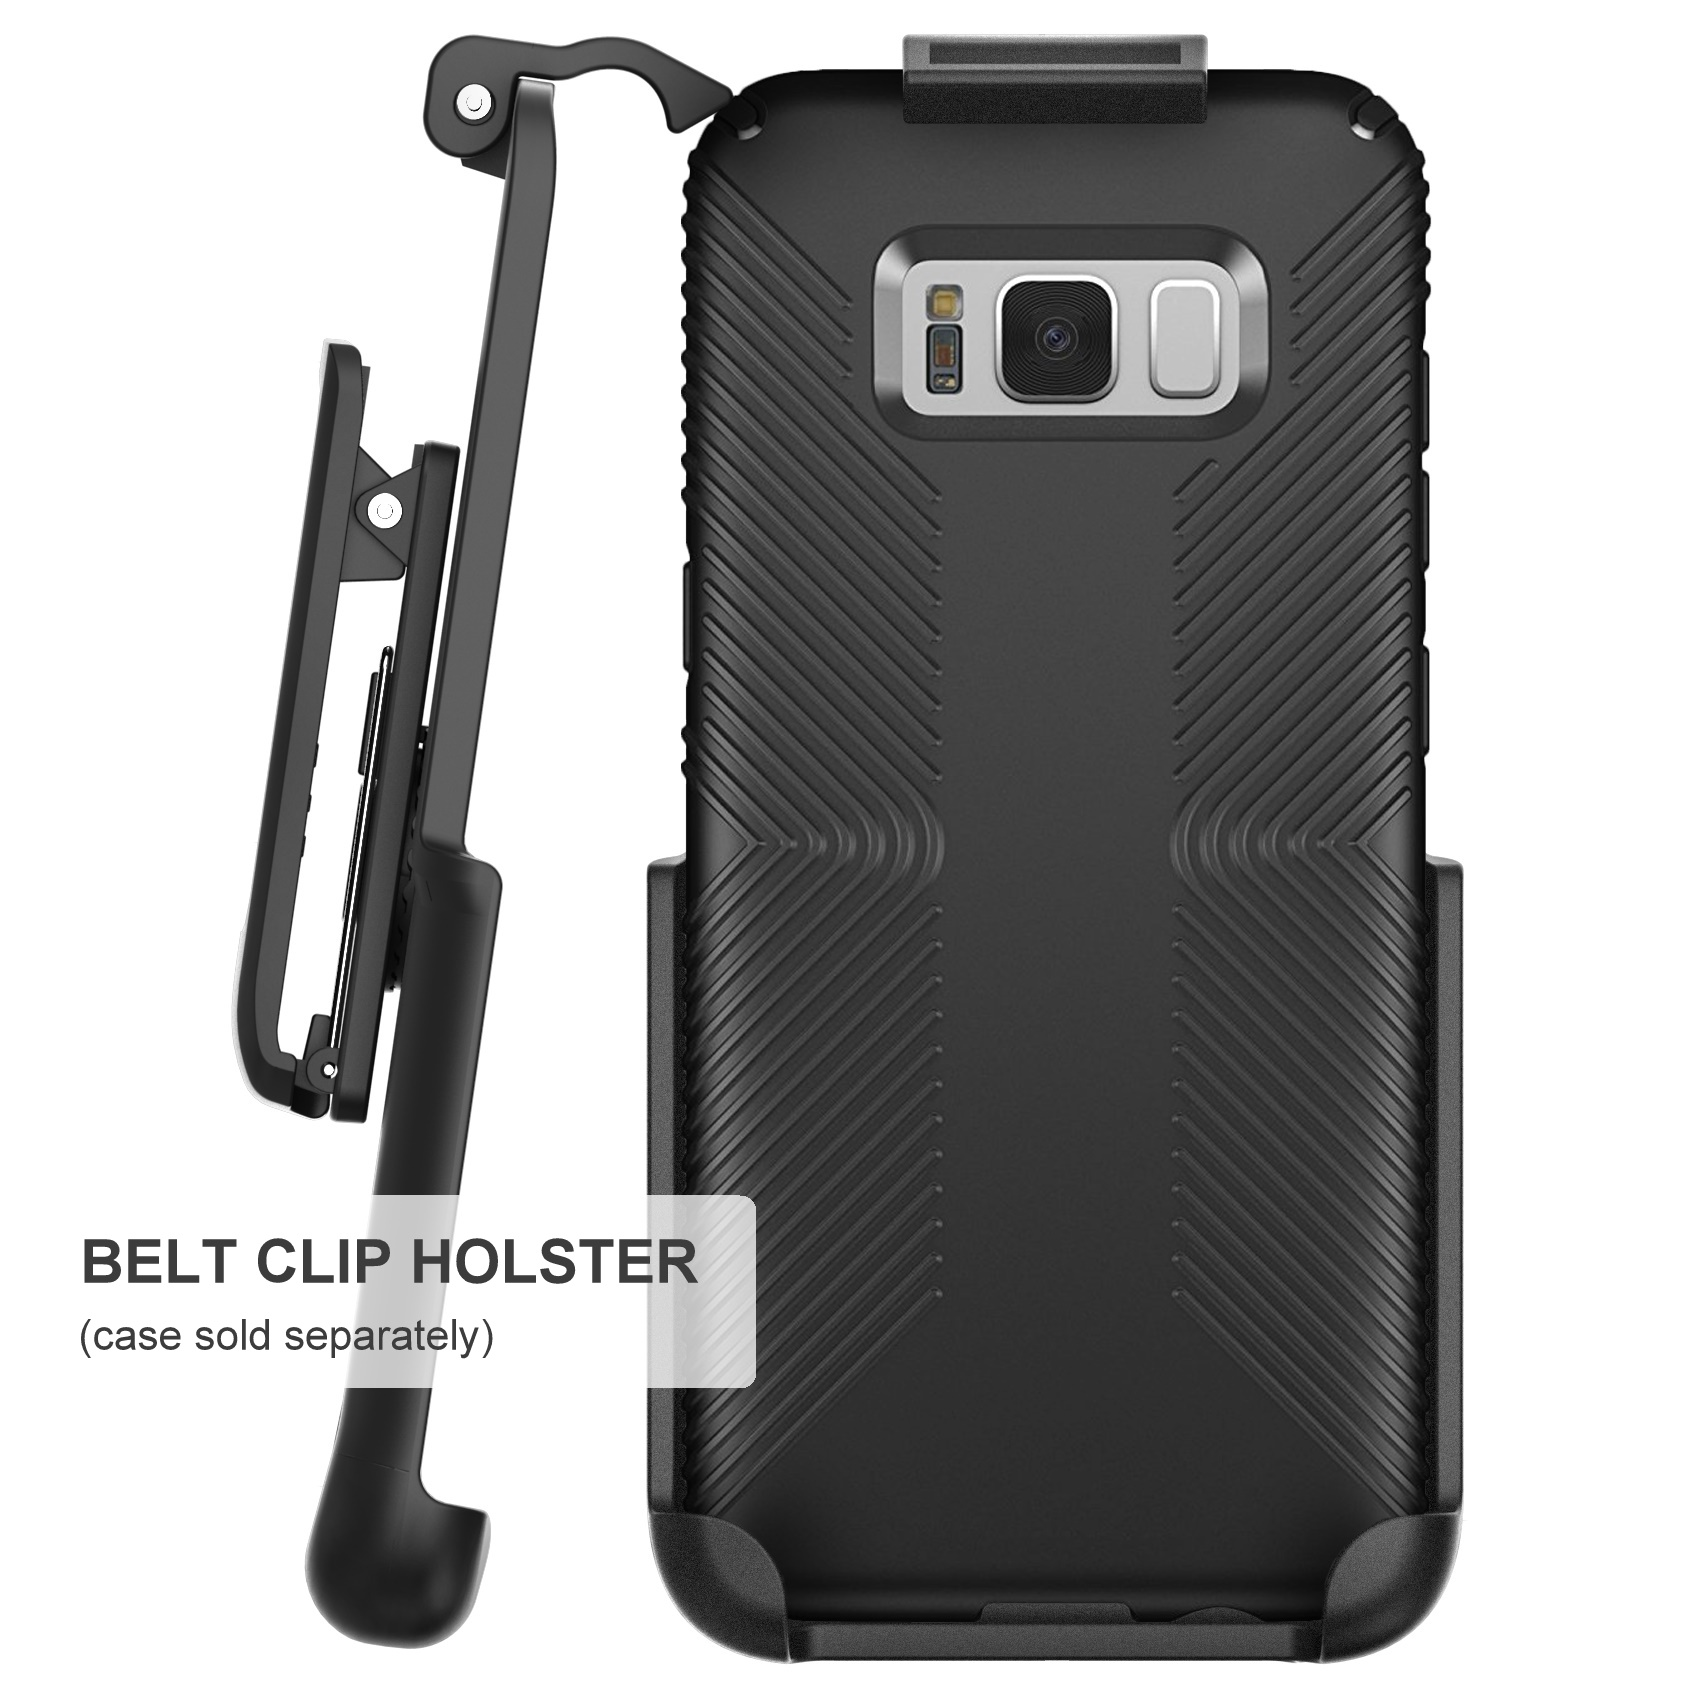 sale retailer 83e47 511d2 Belt Clip Holster for Speck Presidio Grip Case - Samsung Galaxy S8 Plus  (S8+) By Encased (case not included)